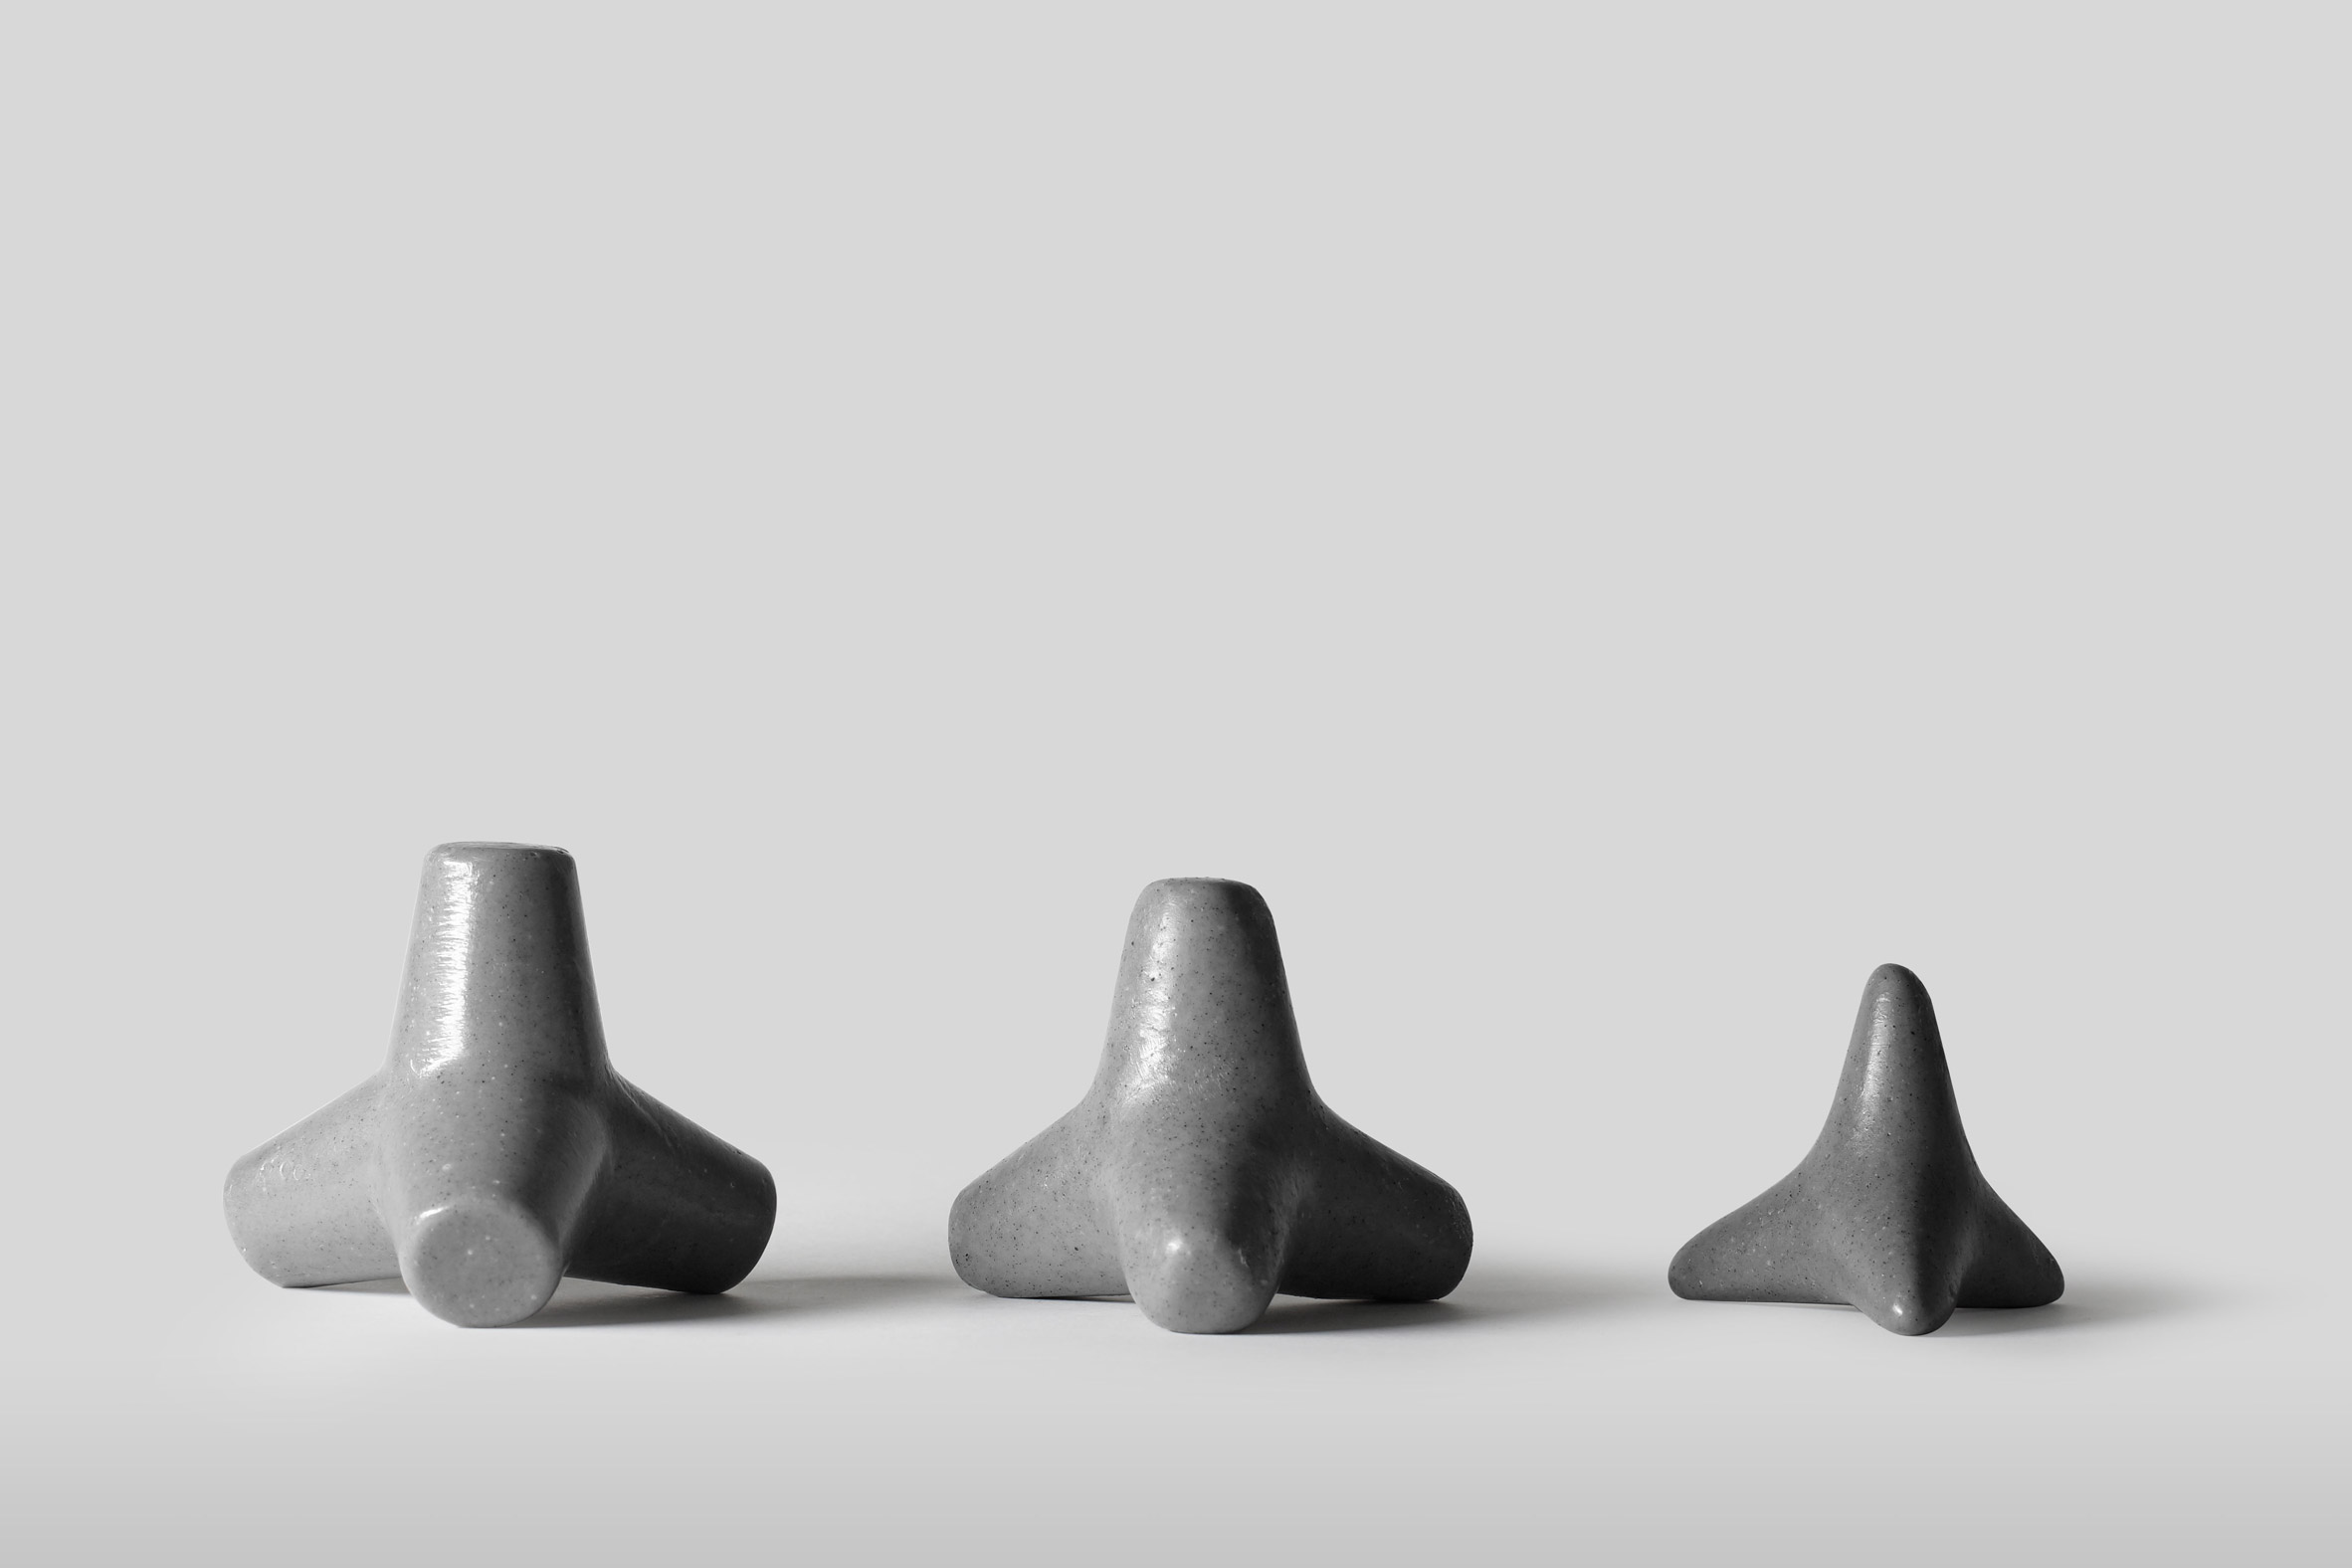 Tetra Soap is designed to look like concrete structures